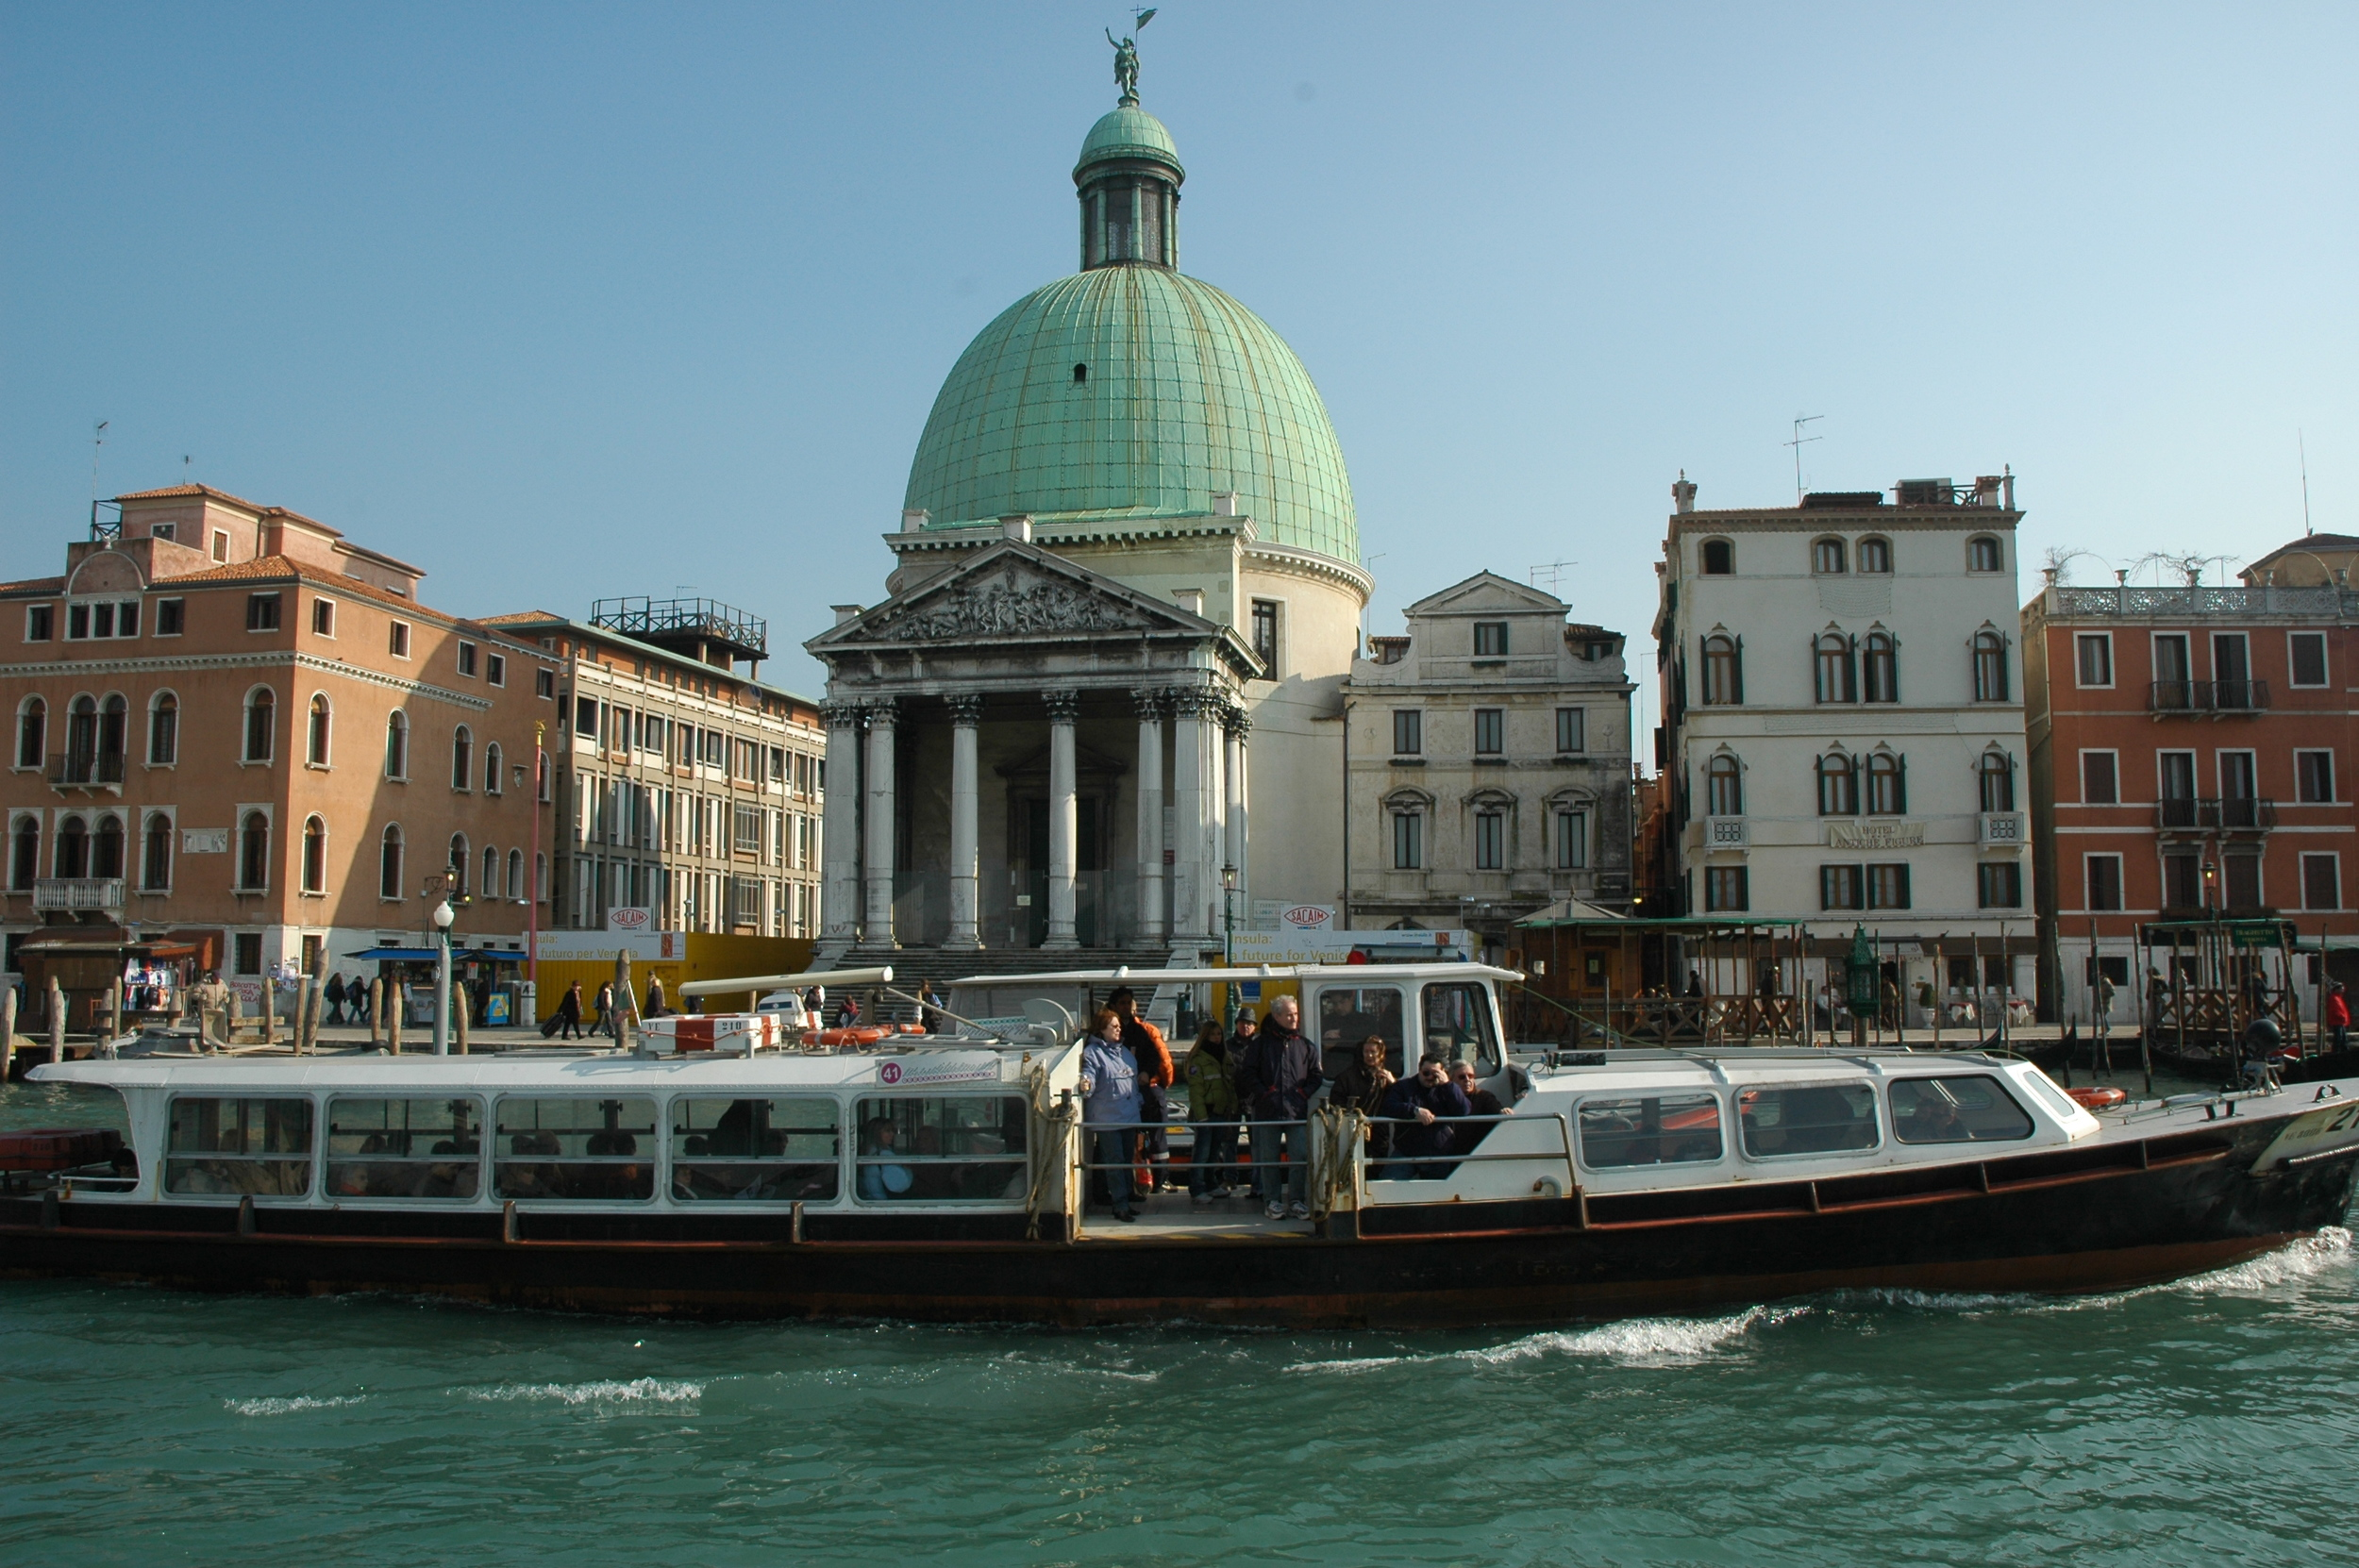 Typical Venetian Water Taxi